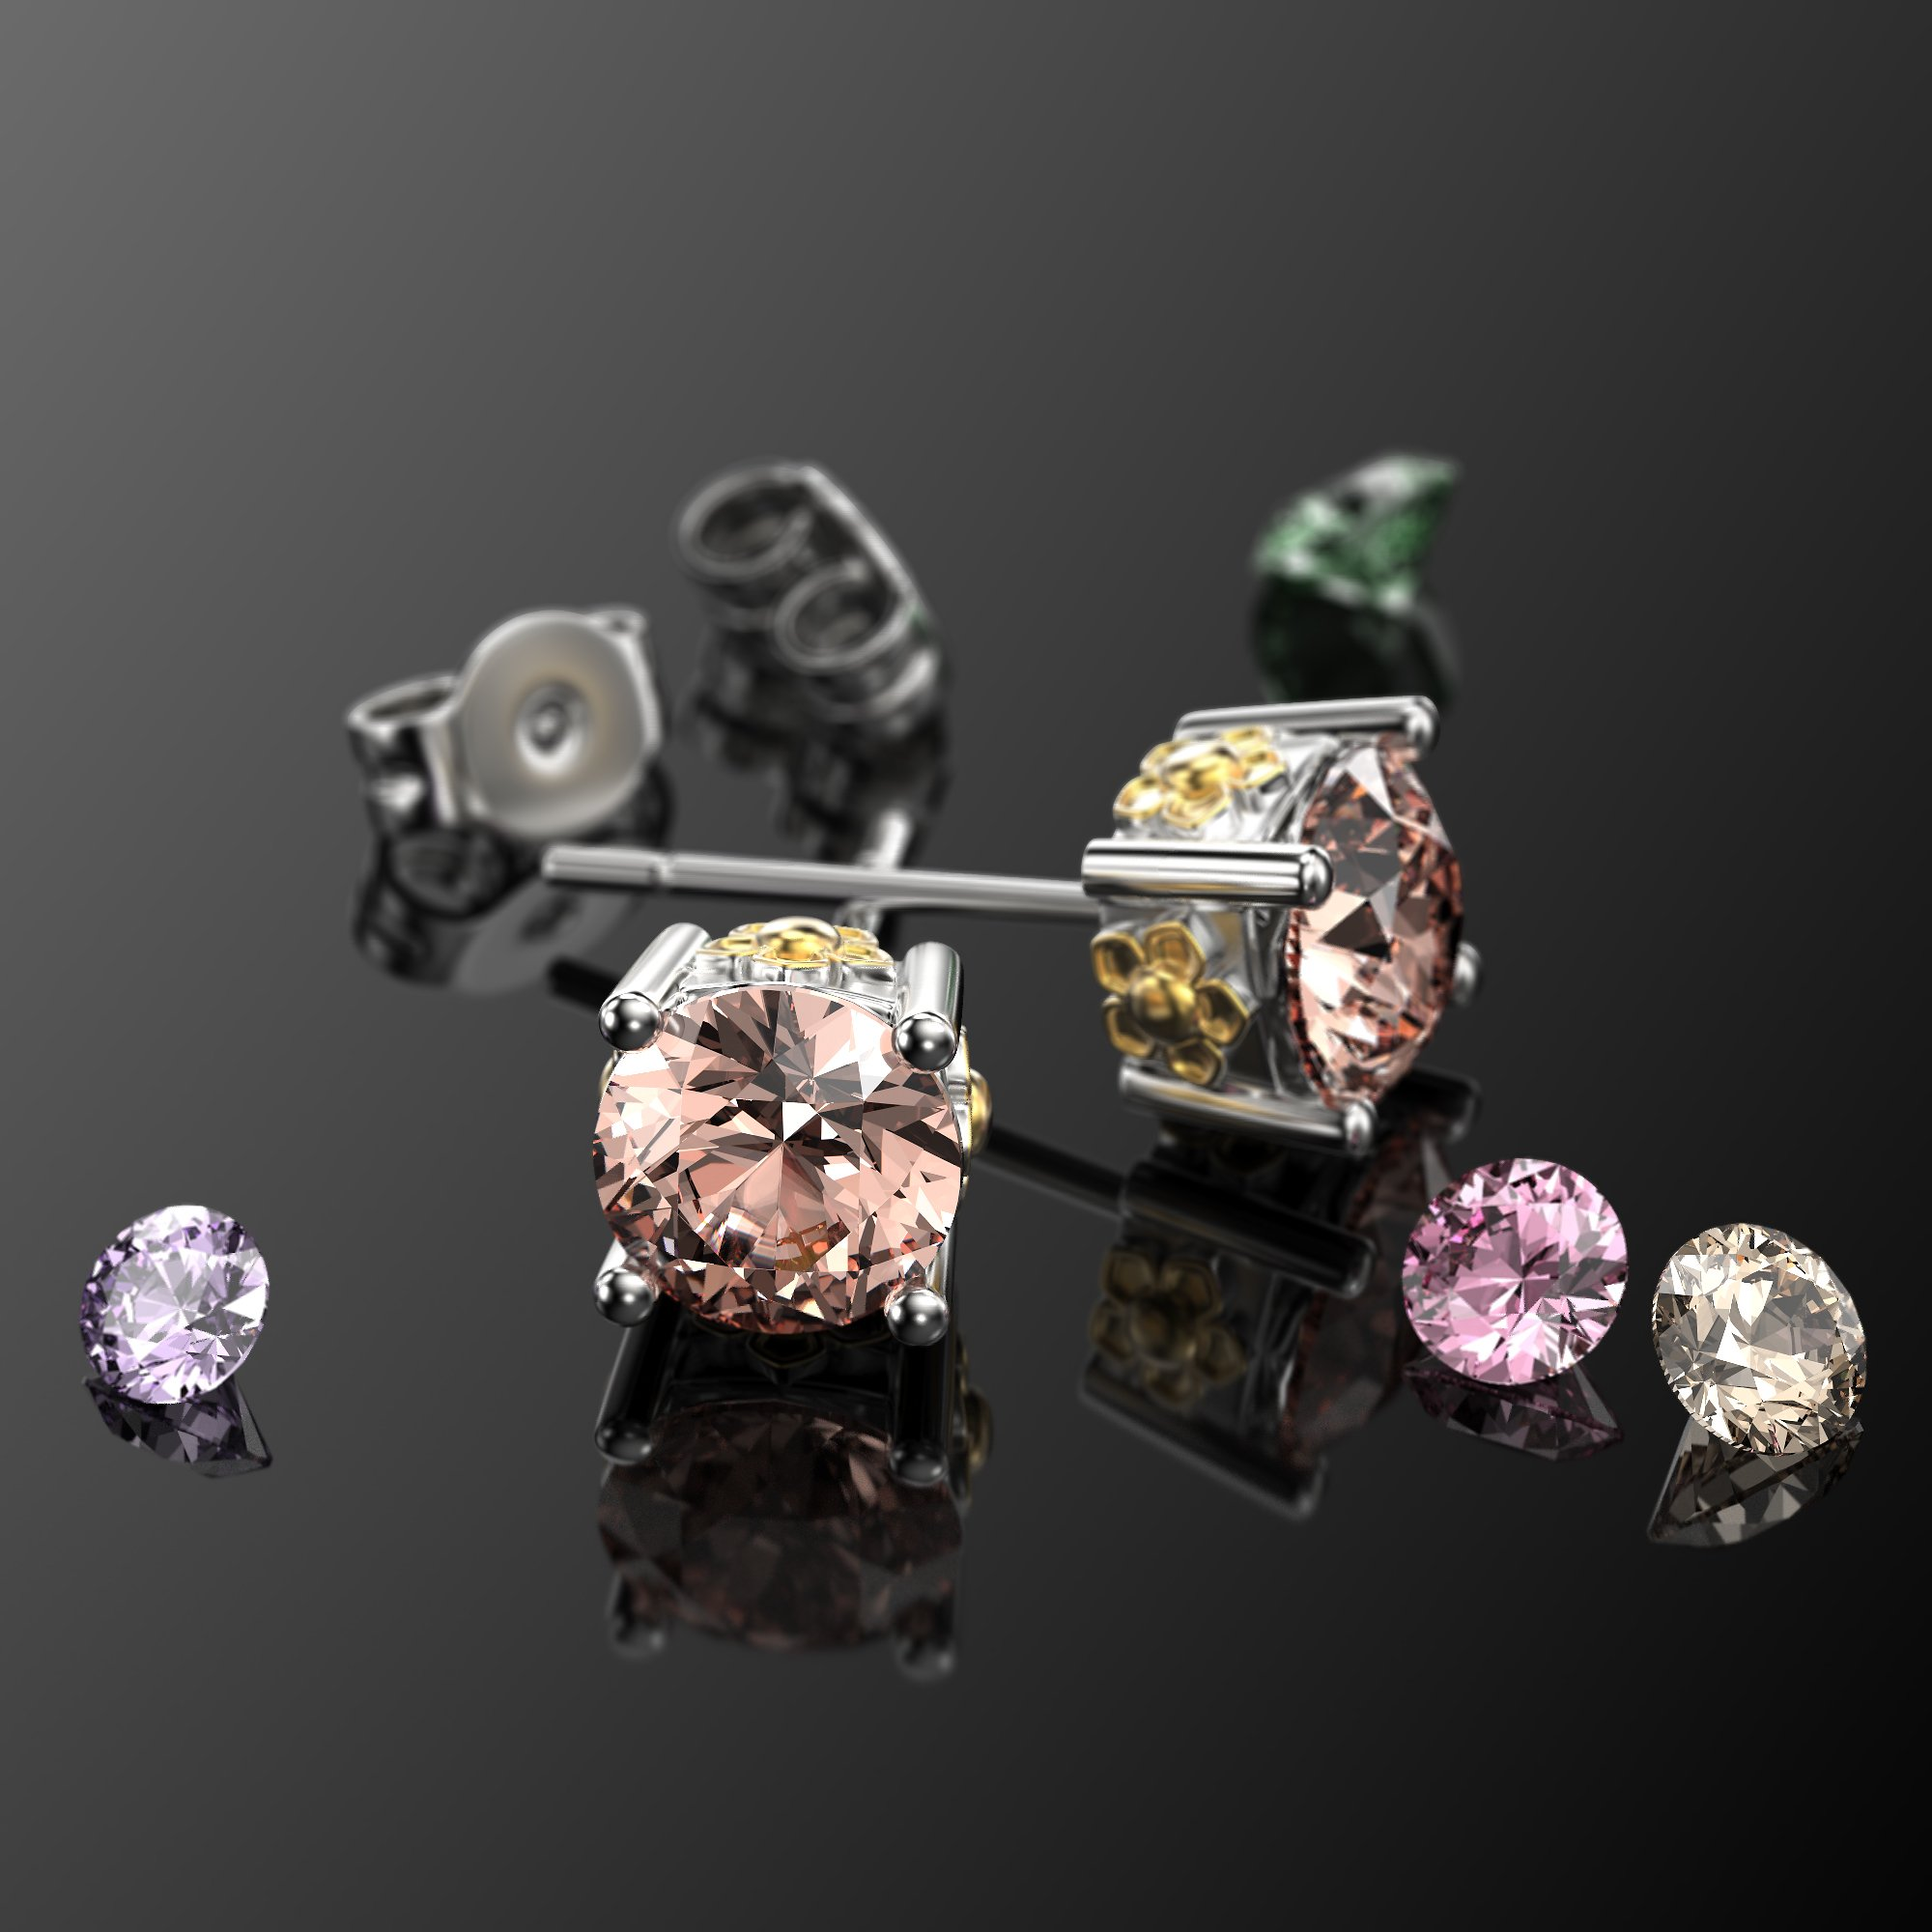 VAN LECONY White Gold and Gold Plated Flower Stud Earrings,Light Peach by VAN LECONY (Image #5)